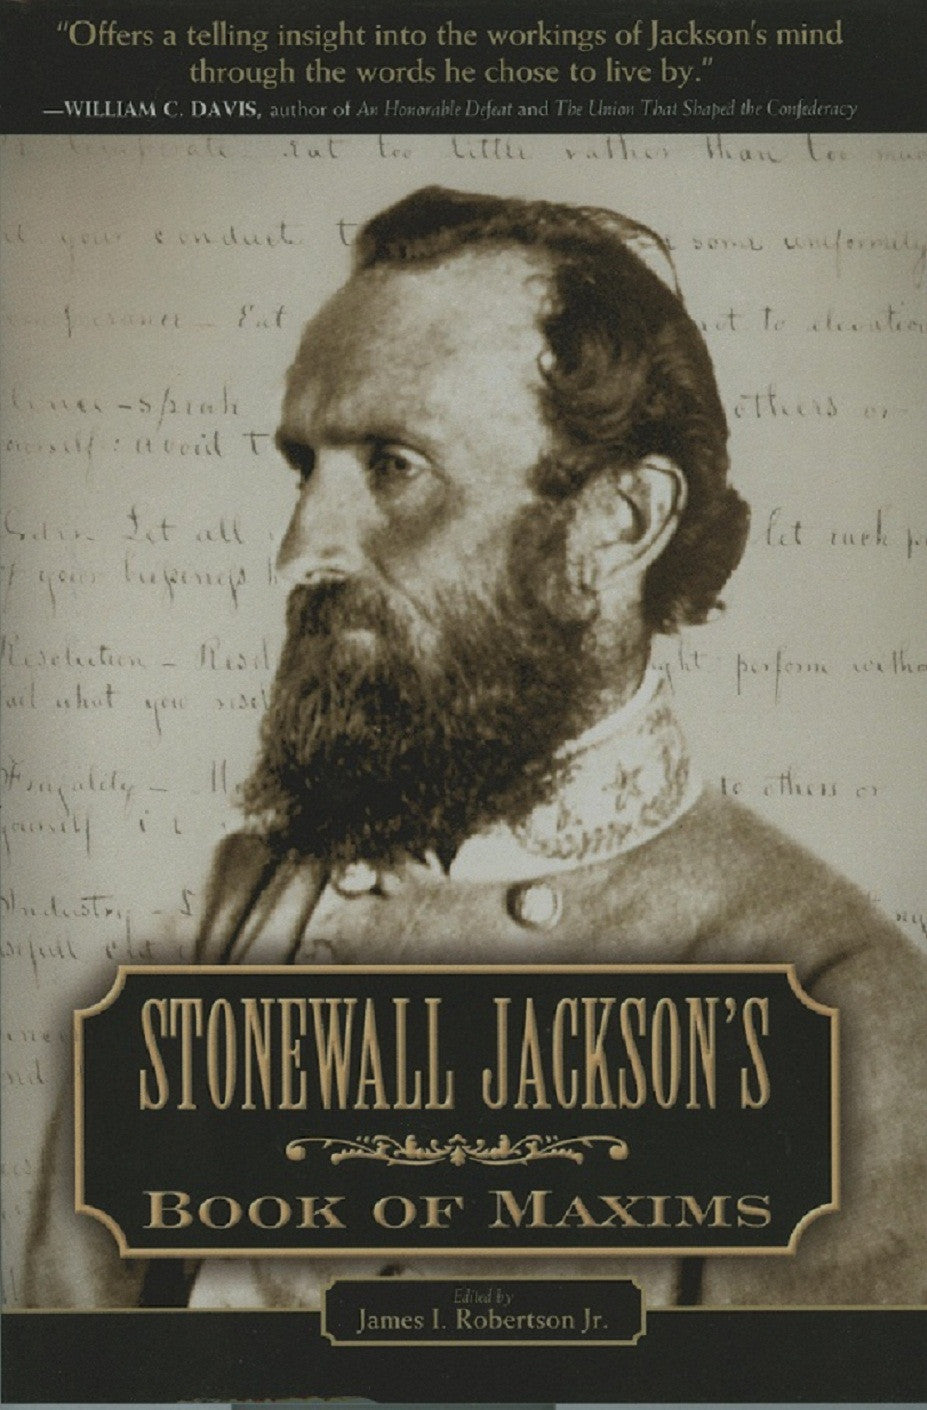 Books, Stonewall Jackson's Book of Maxims